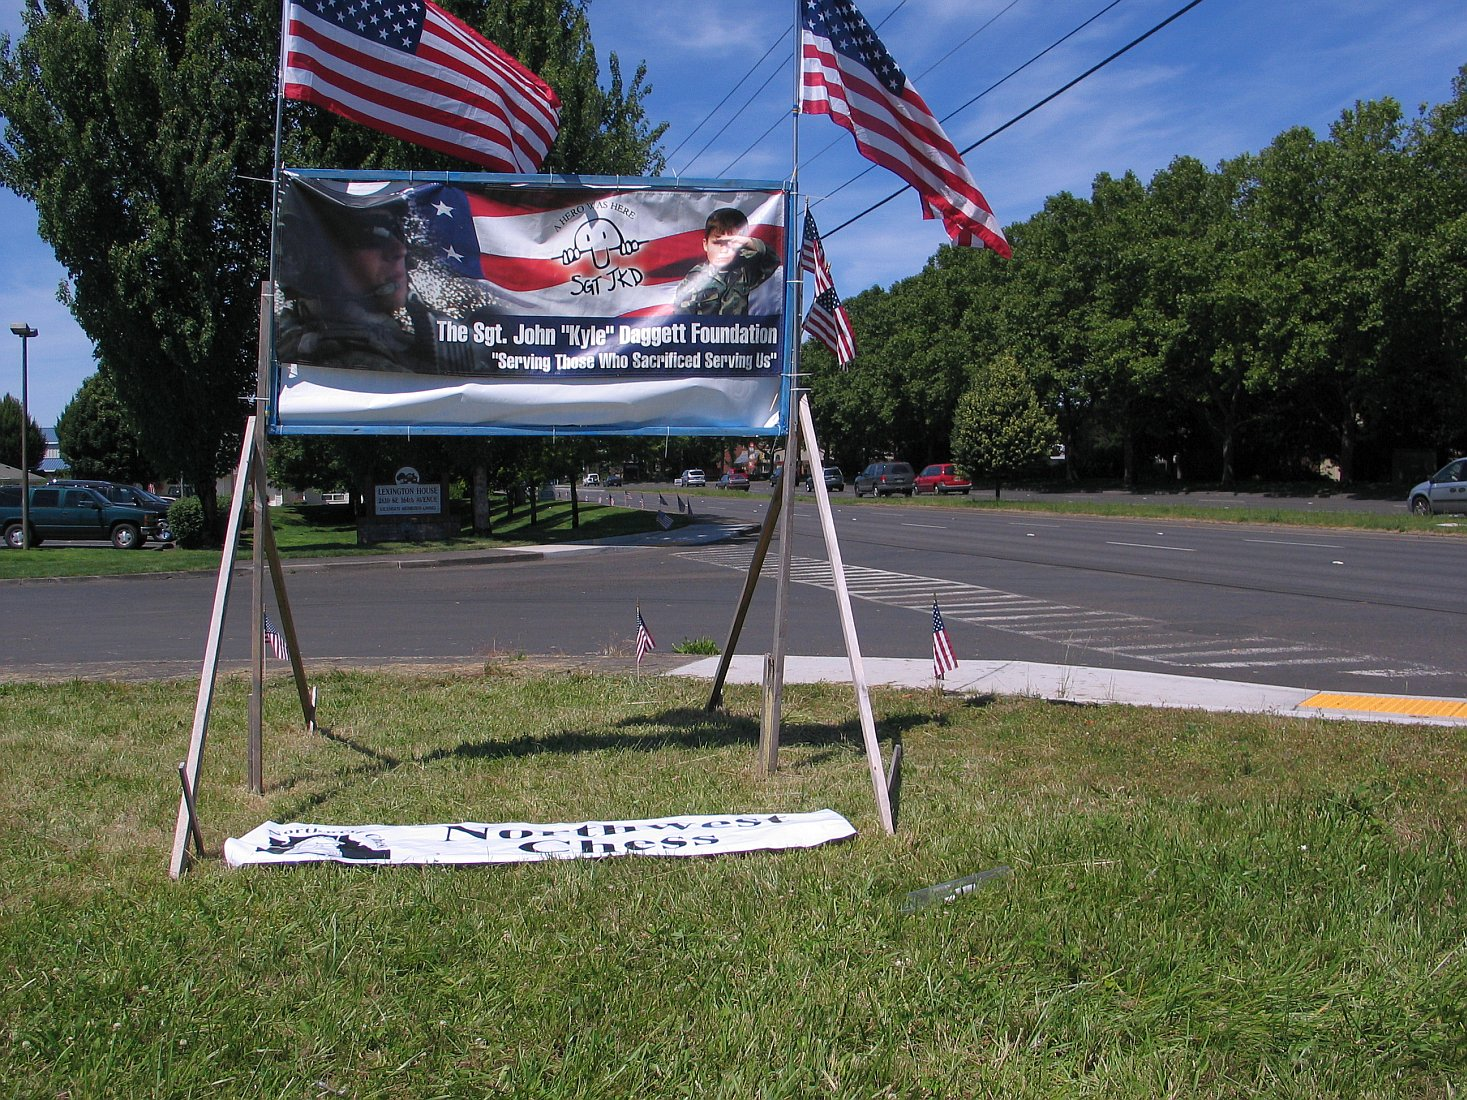 This banner and the NWC Banner were in a lot next to where Russell Miller lives.